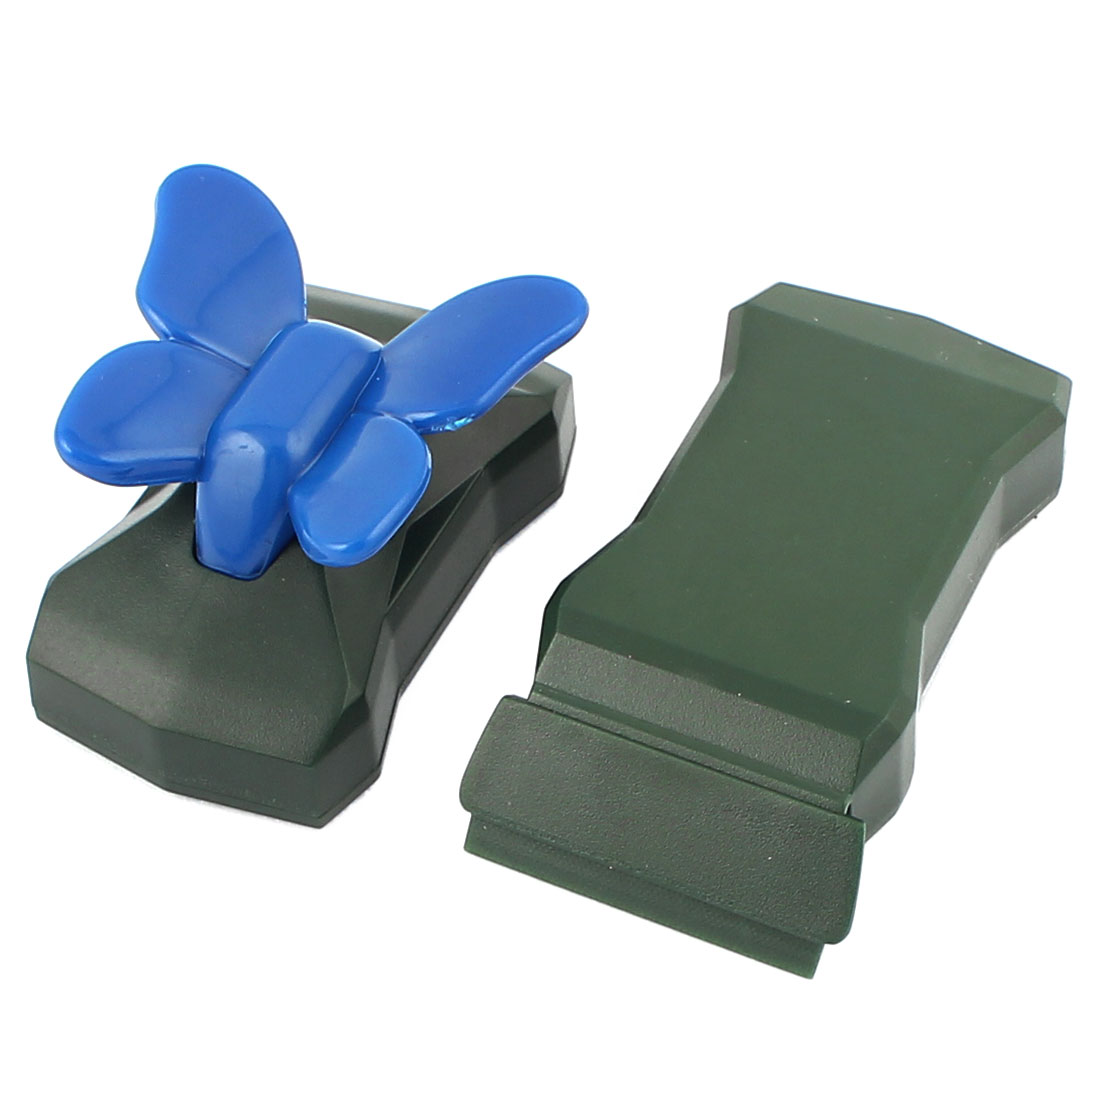 Fish Tank Army Green Rotatable Sponge Cleaning Brush Cleaner Scrubber 2pcs